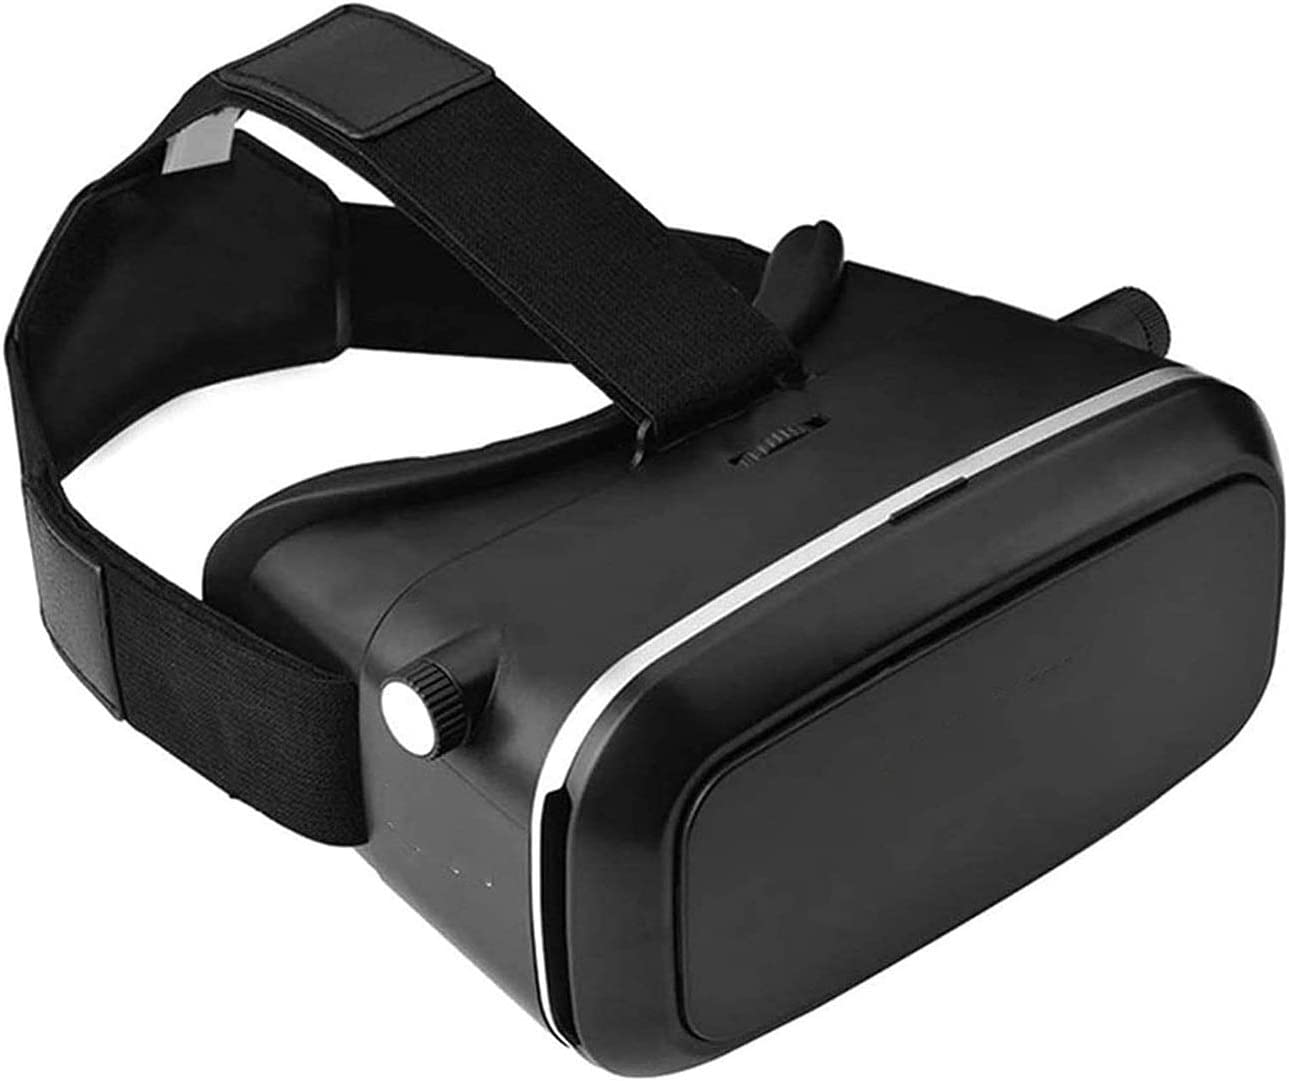 Bdesign Smart Virtual Reality Glasses,Virtual Reality Headset 3D VR Goggles Glasses for 3D Movies Compatible for 4.7-6.0 Inches iOS Android Smartphones